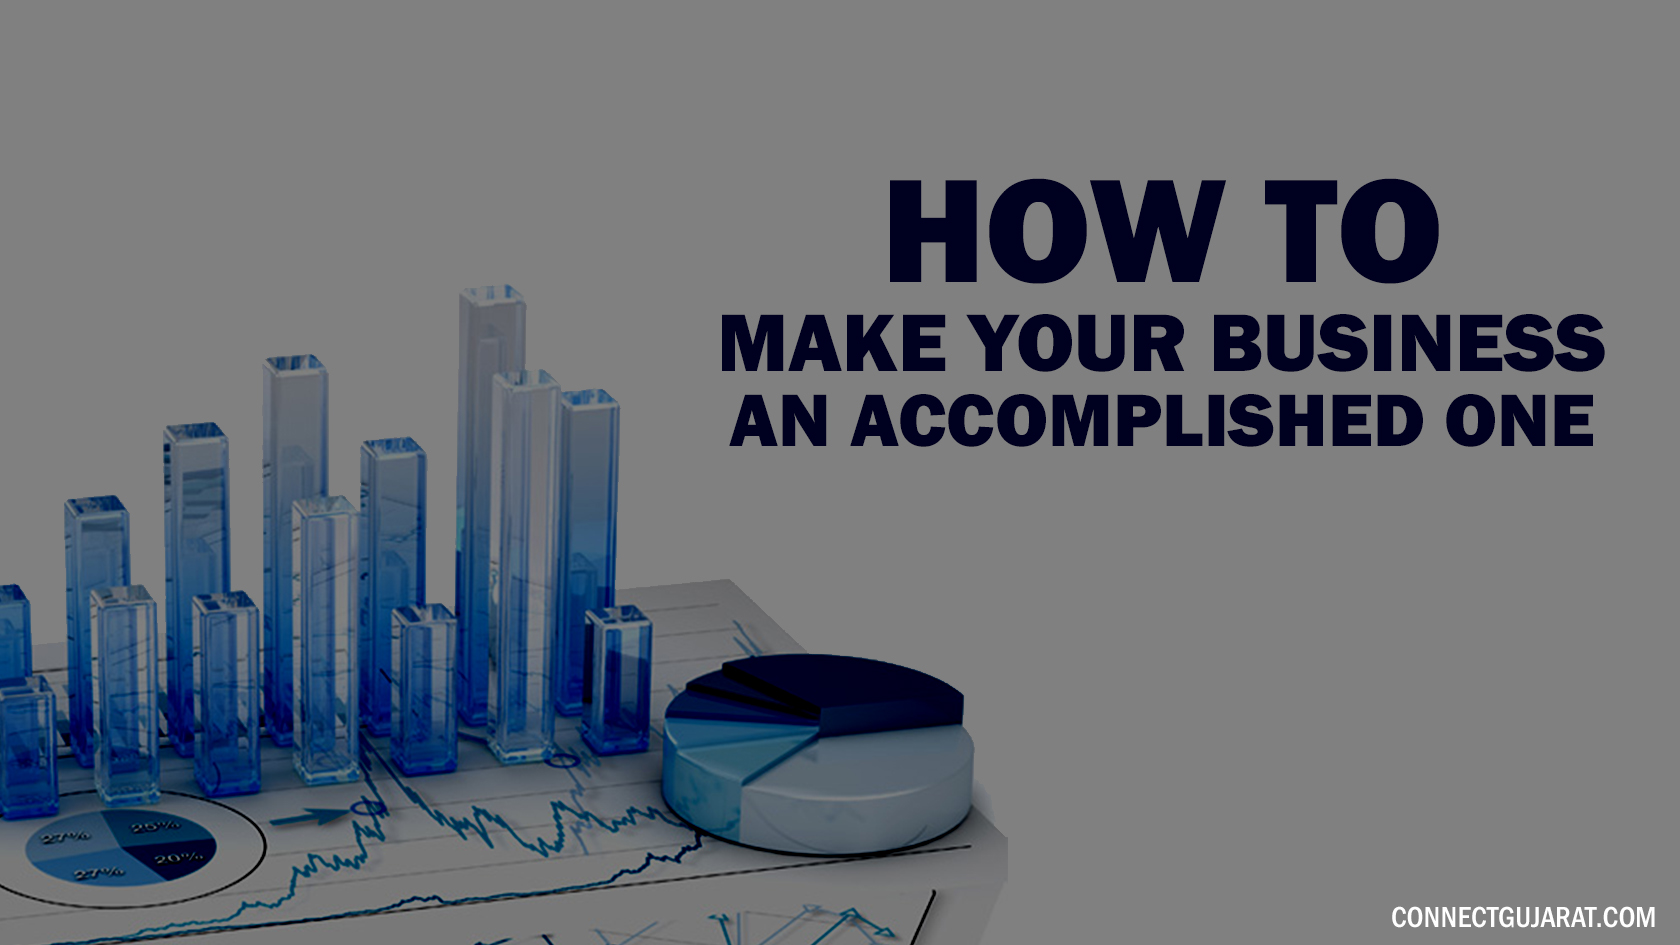 How to make your business an accomplished one?